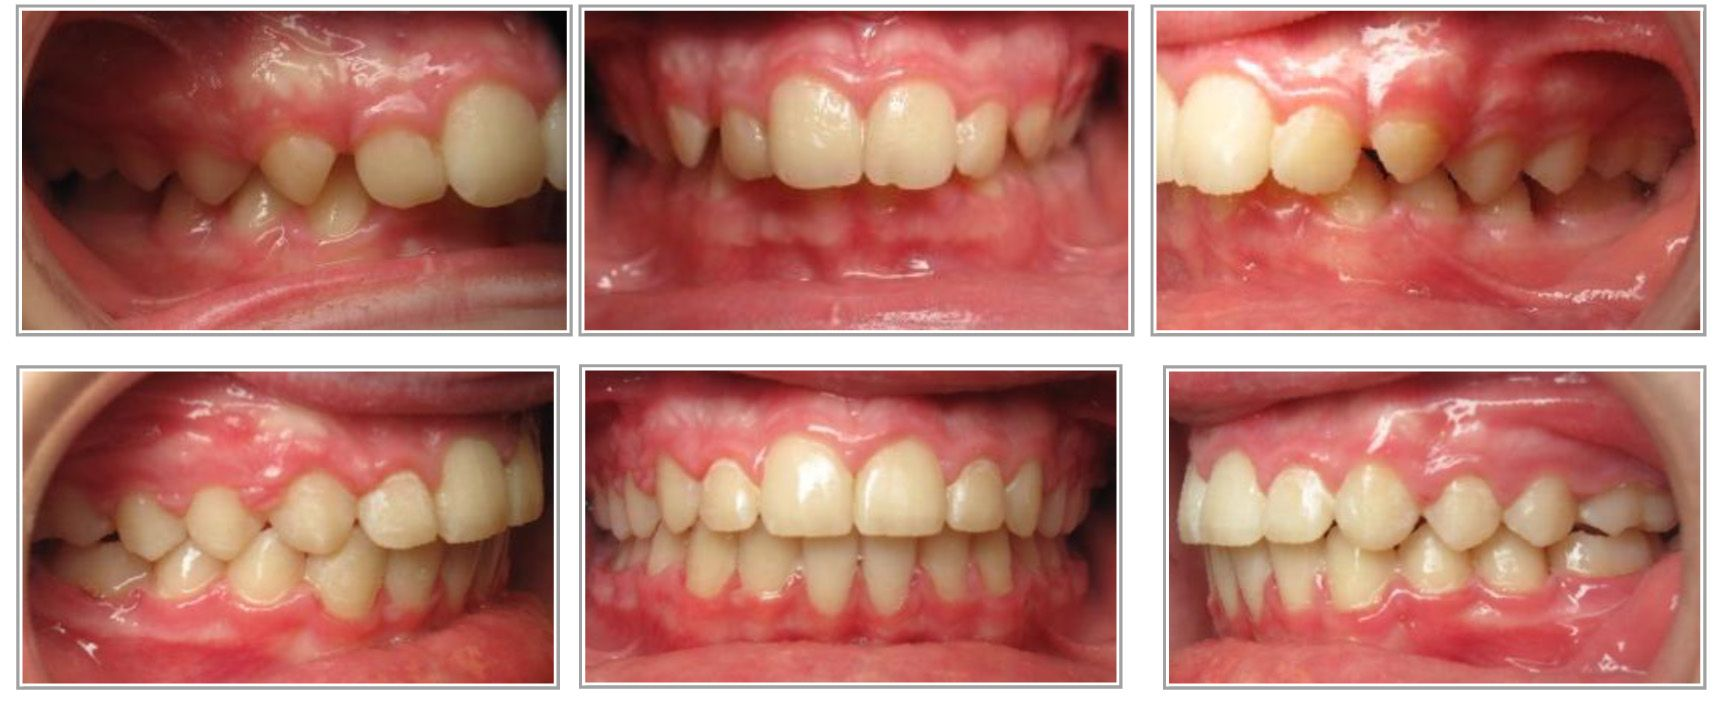 Correction of an overbite and overjet by Dr. Kendra Pratt